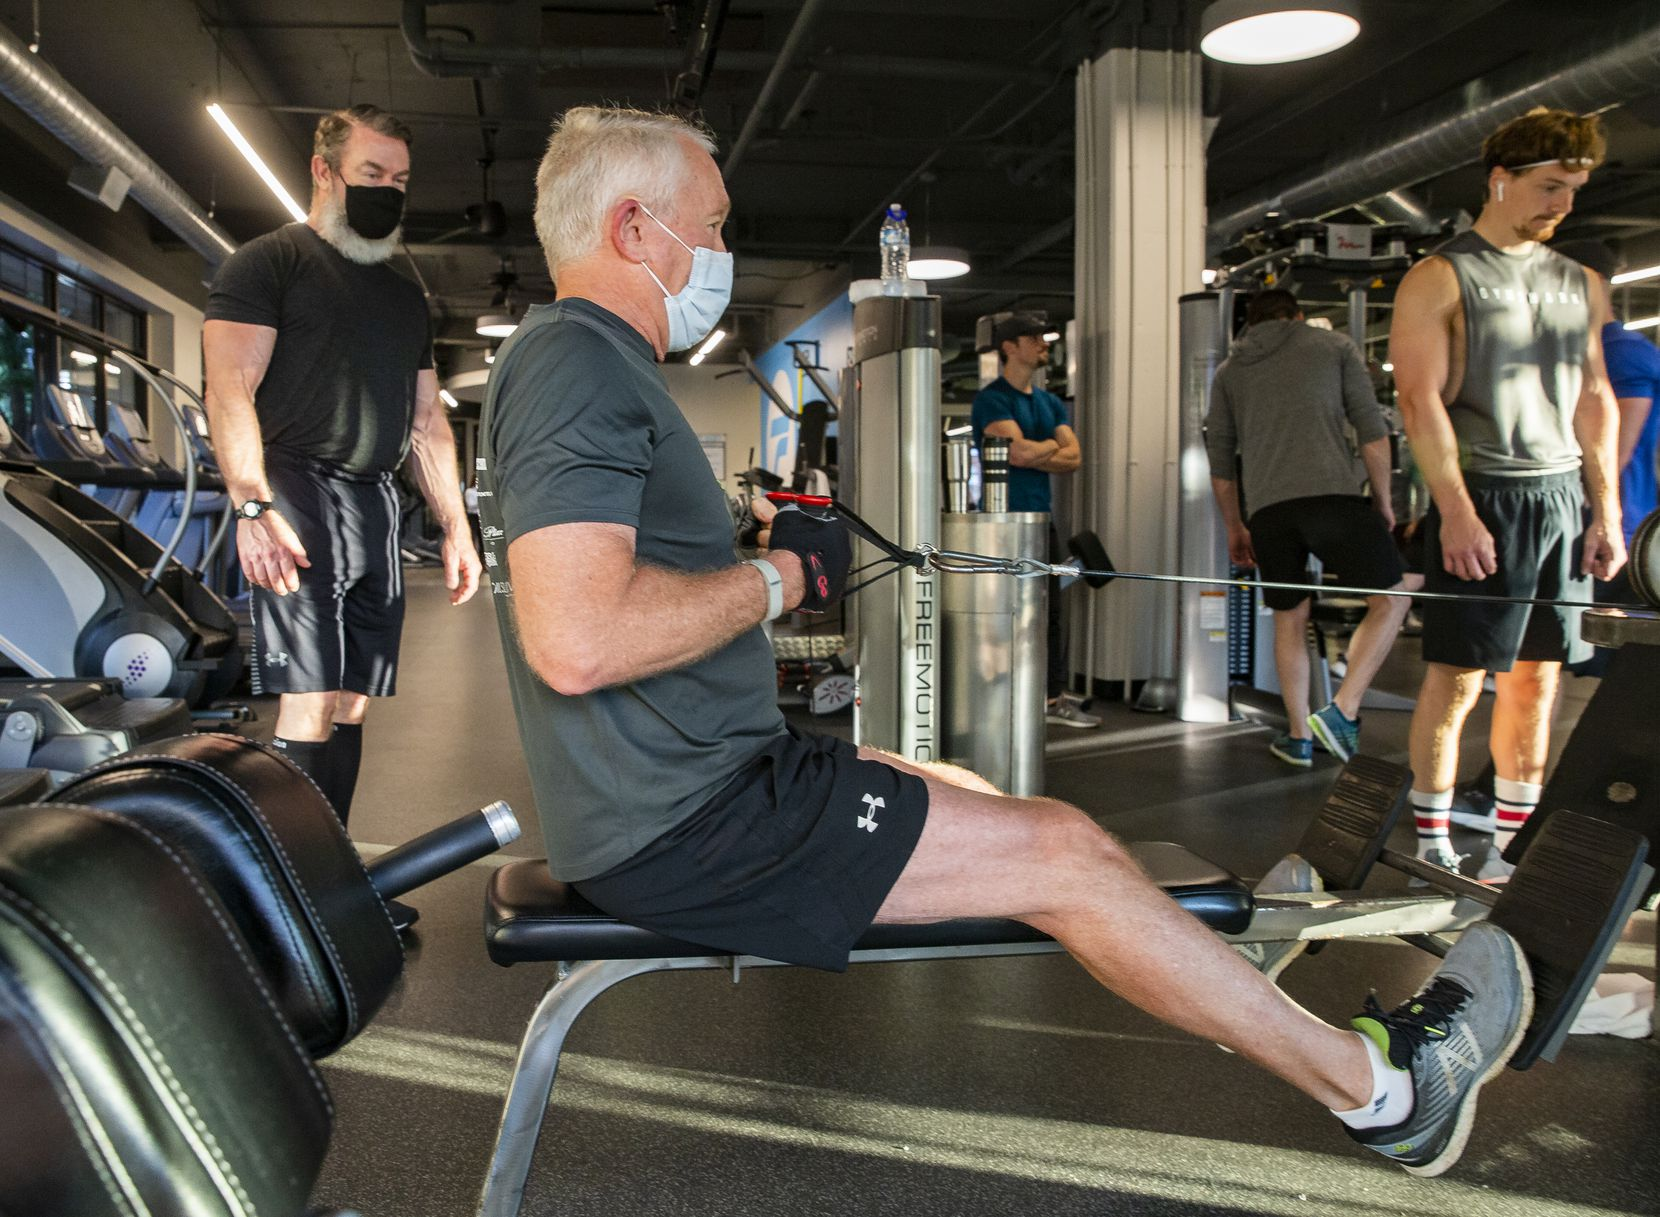 Client Durward Watson of Oak Lawn (center) works out with Trophy Fitness trainer John Gordon (left) at the Uptown gym on May 18, 2020 in Dallas. Watson said he kept active by restoring landscaping and running while the gym was closed.